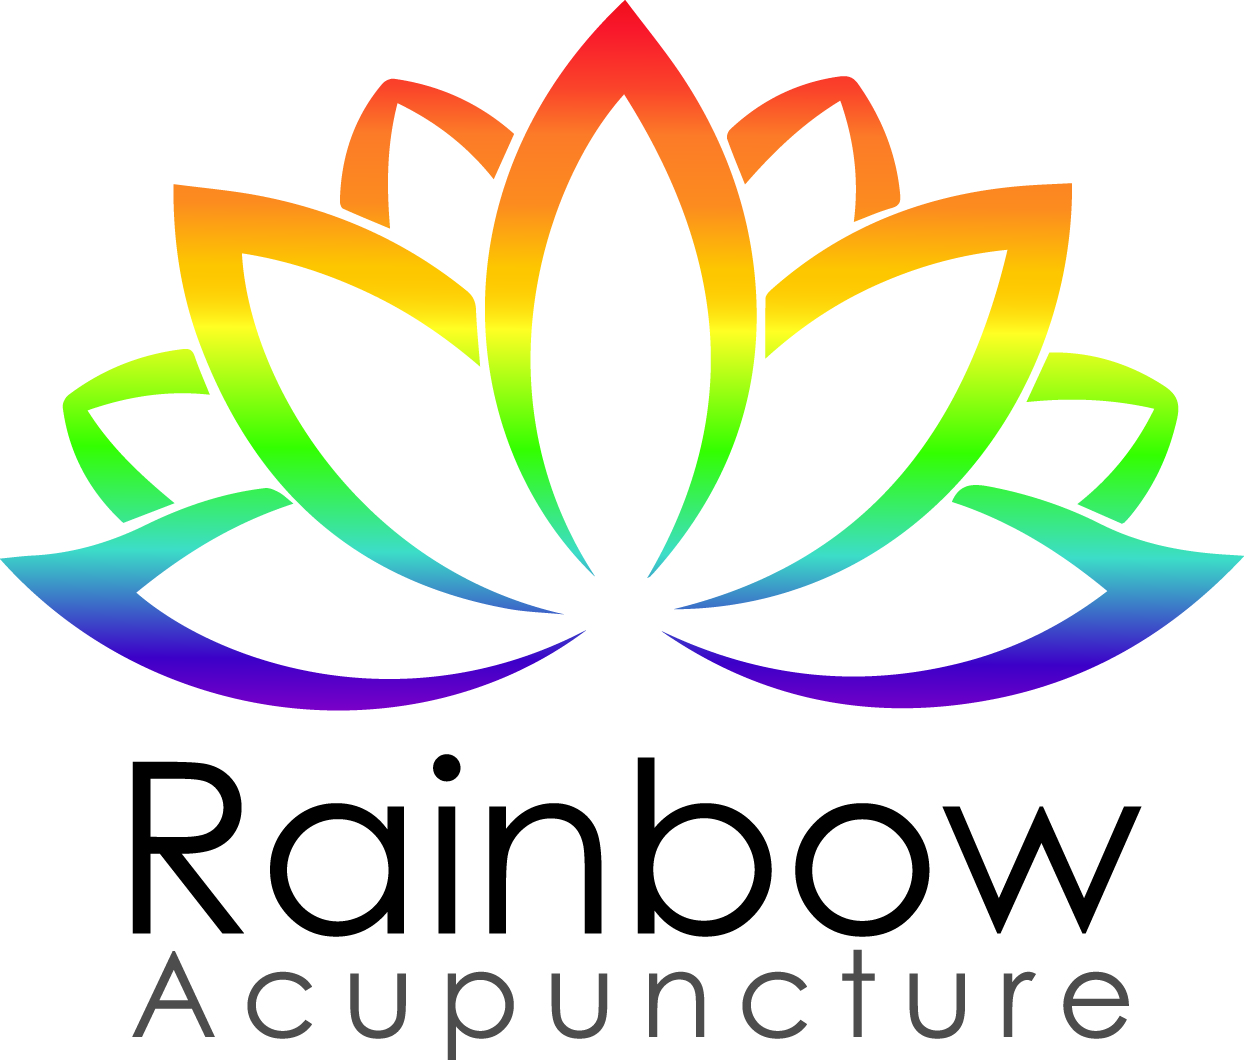 Rainbow Acupuncture